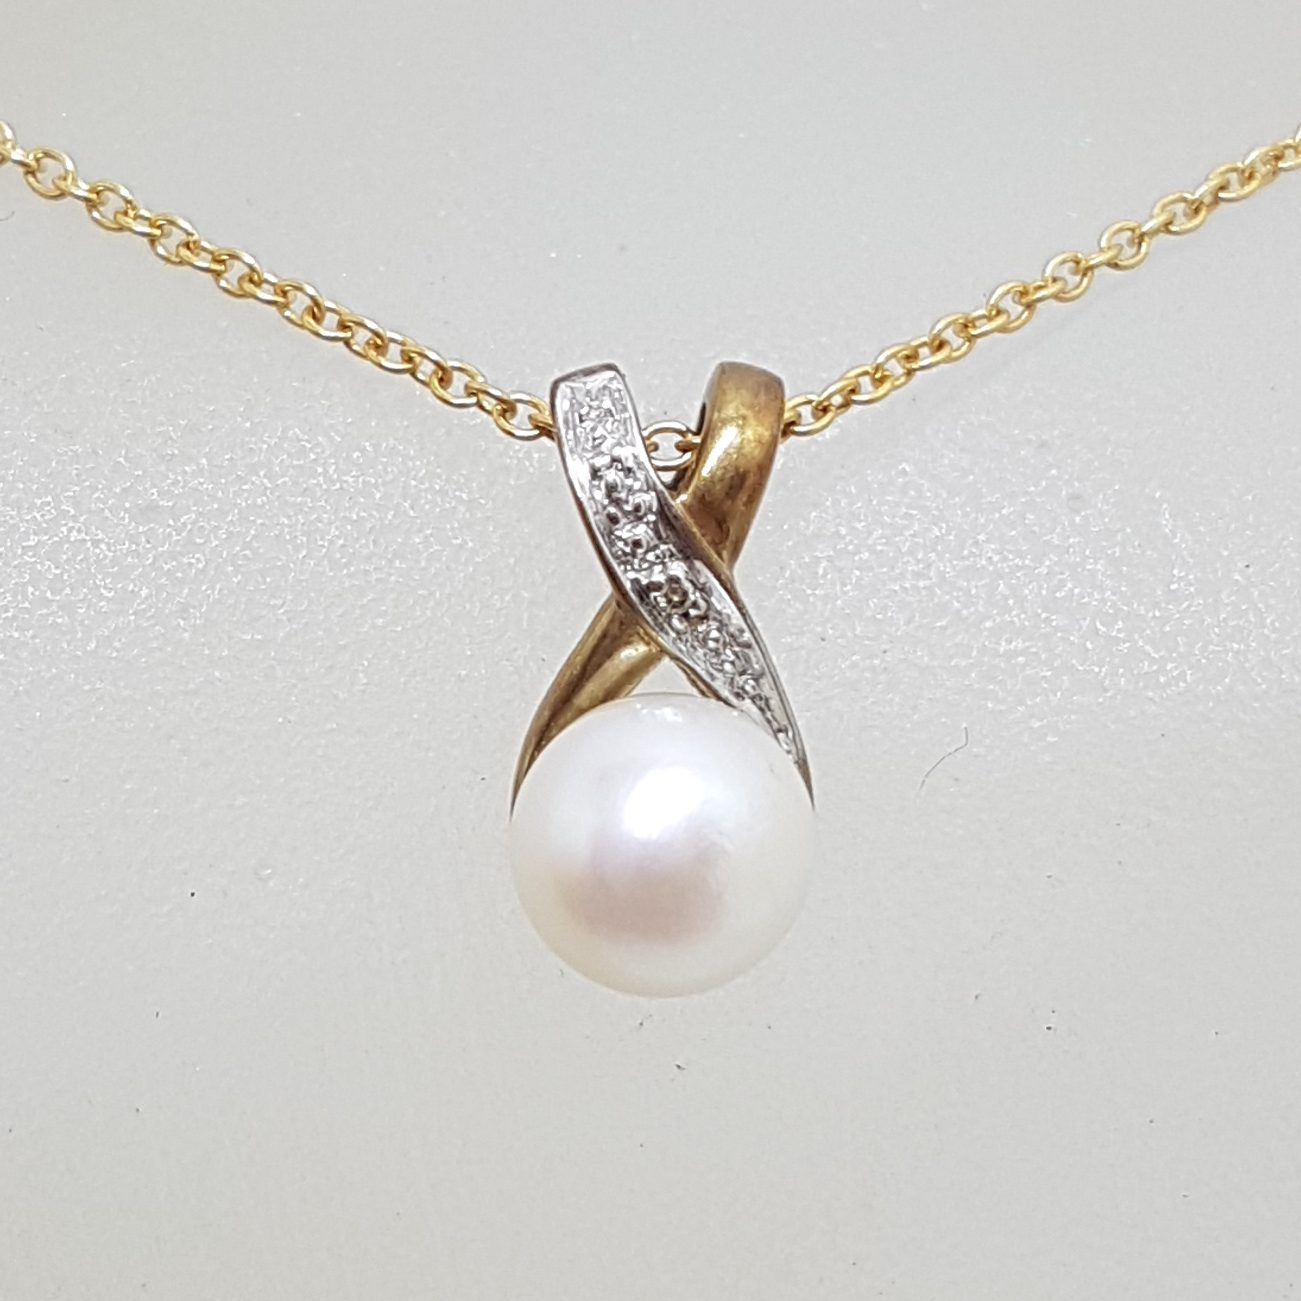 9ct Yellow Gold Diamond & Pearl Twist Pendant on Gold Chain